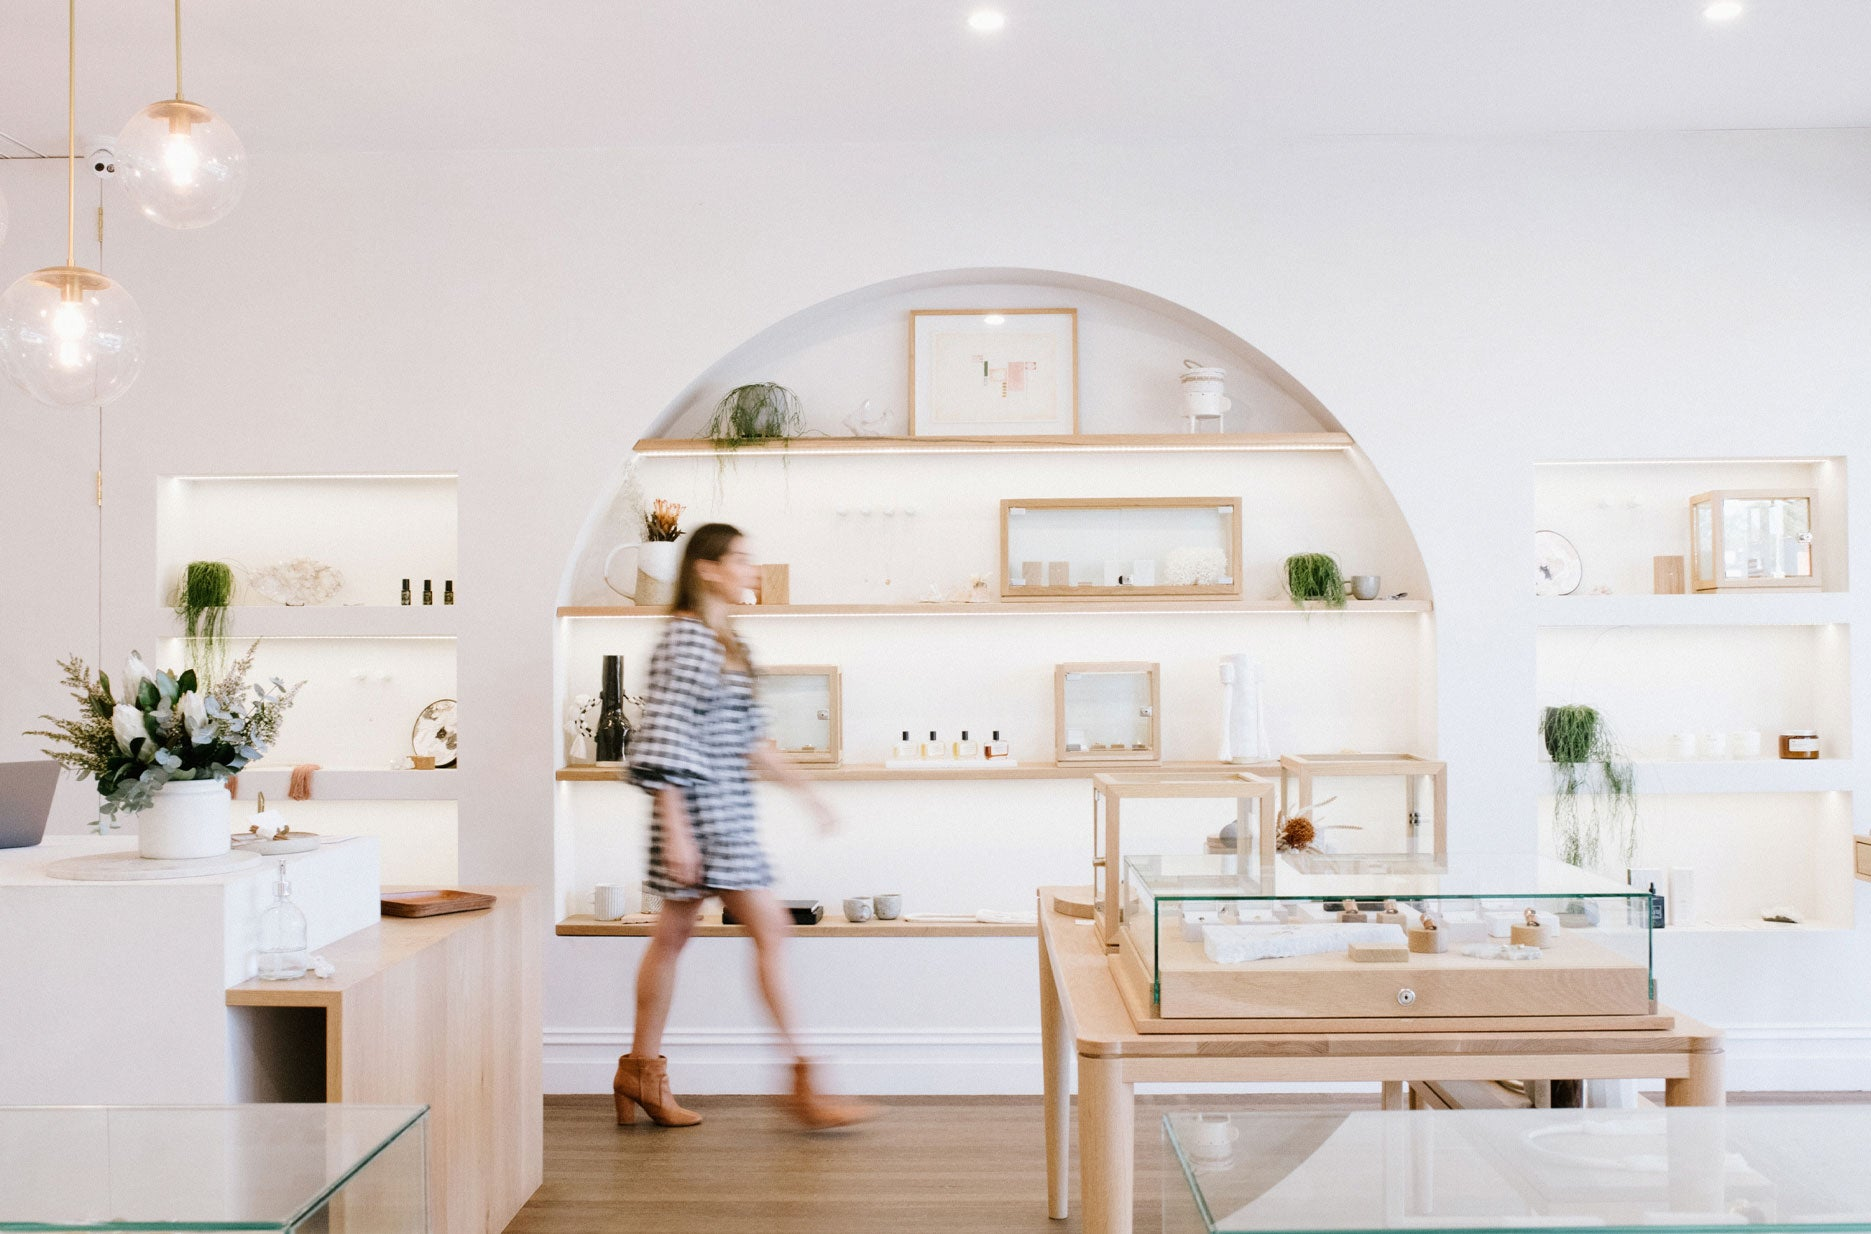 Images of Zin, our Bespoke Customer Service Manager and Designer, in the Showroom